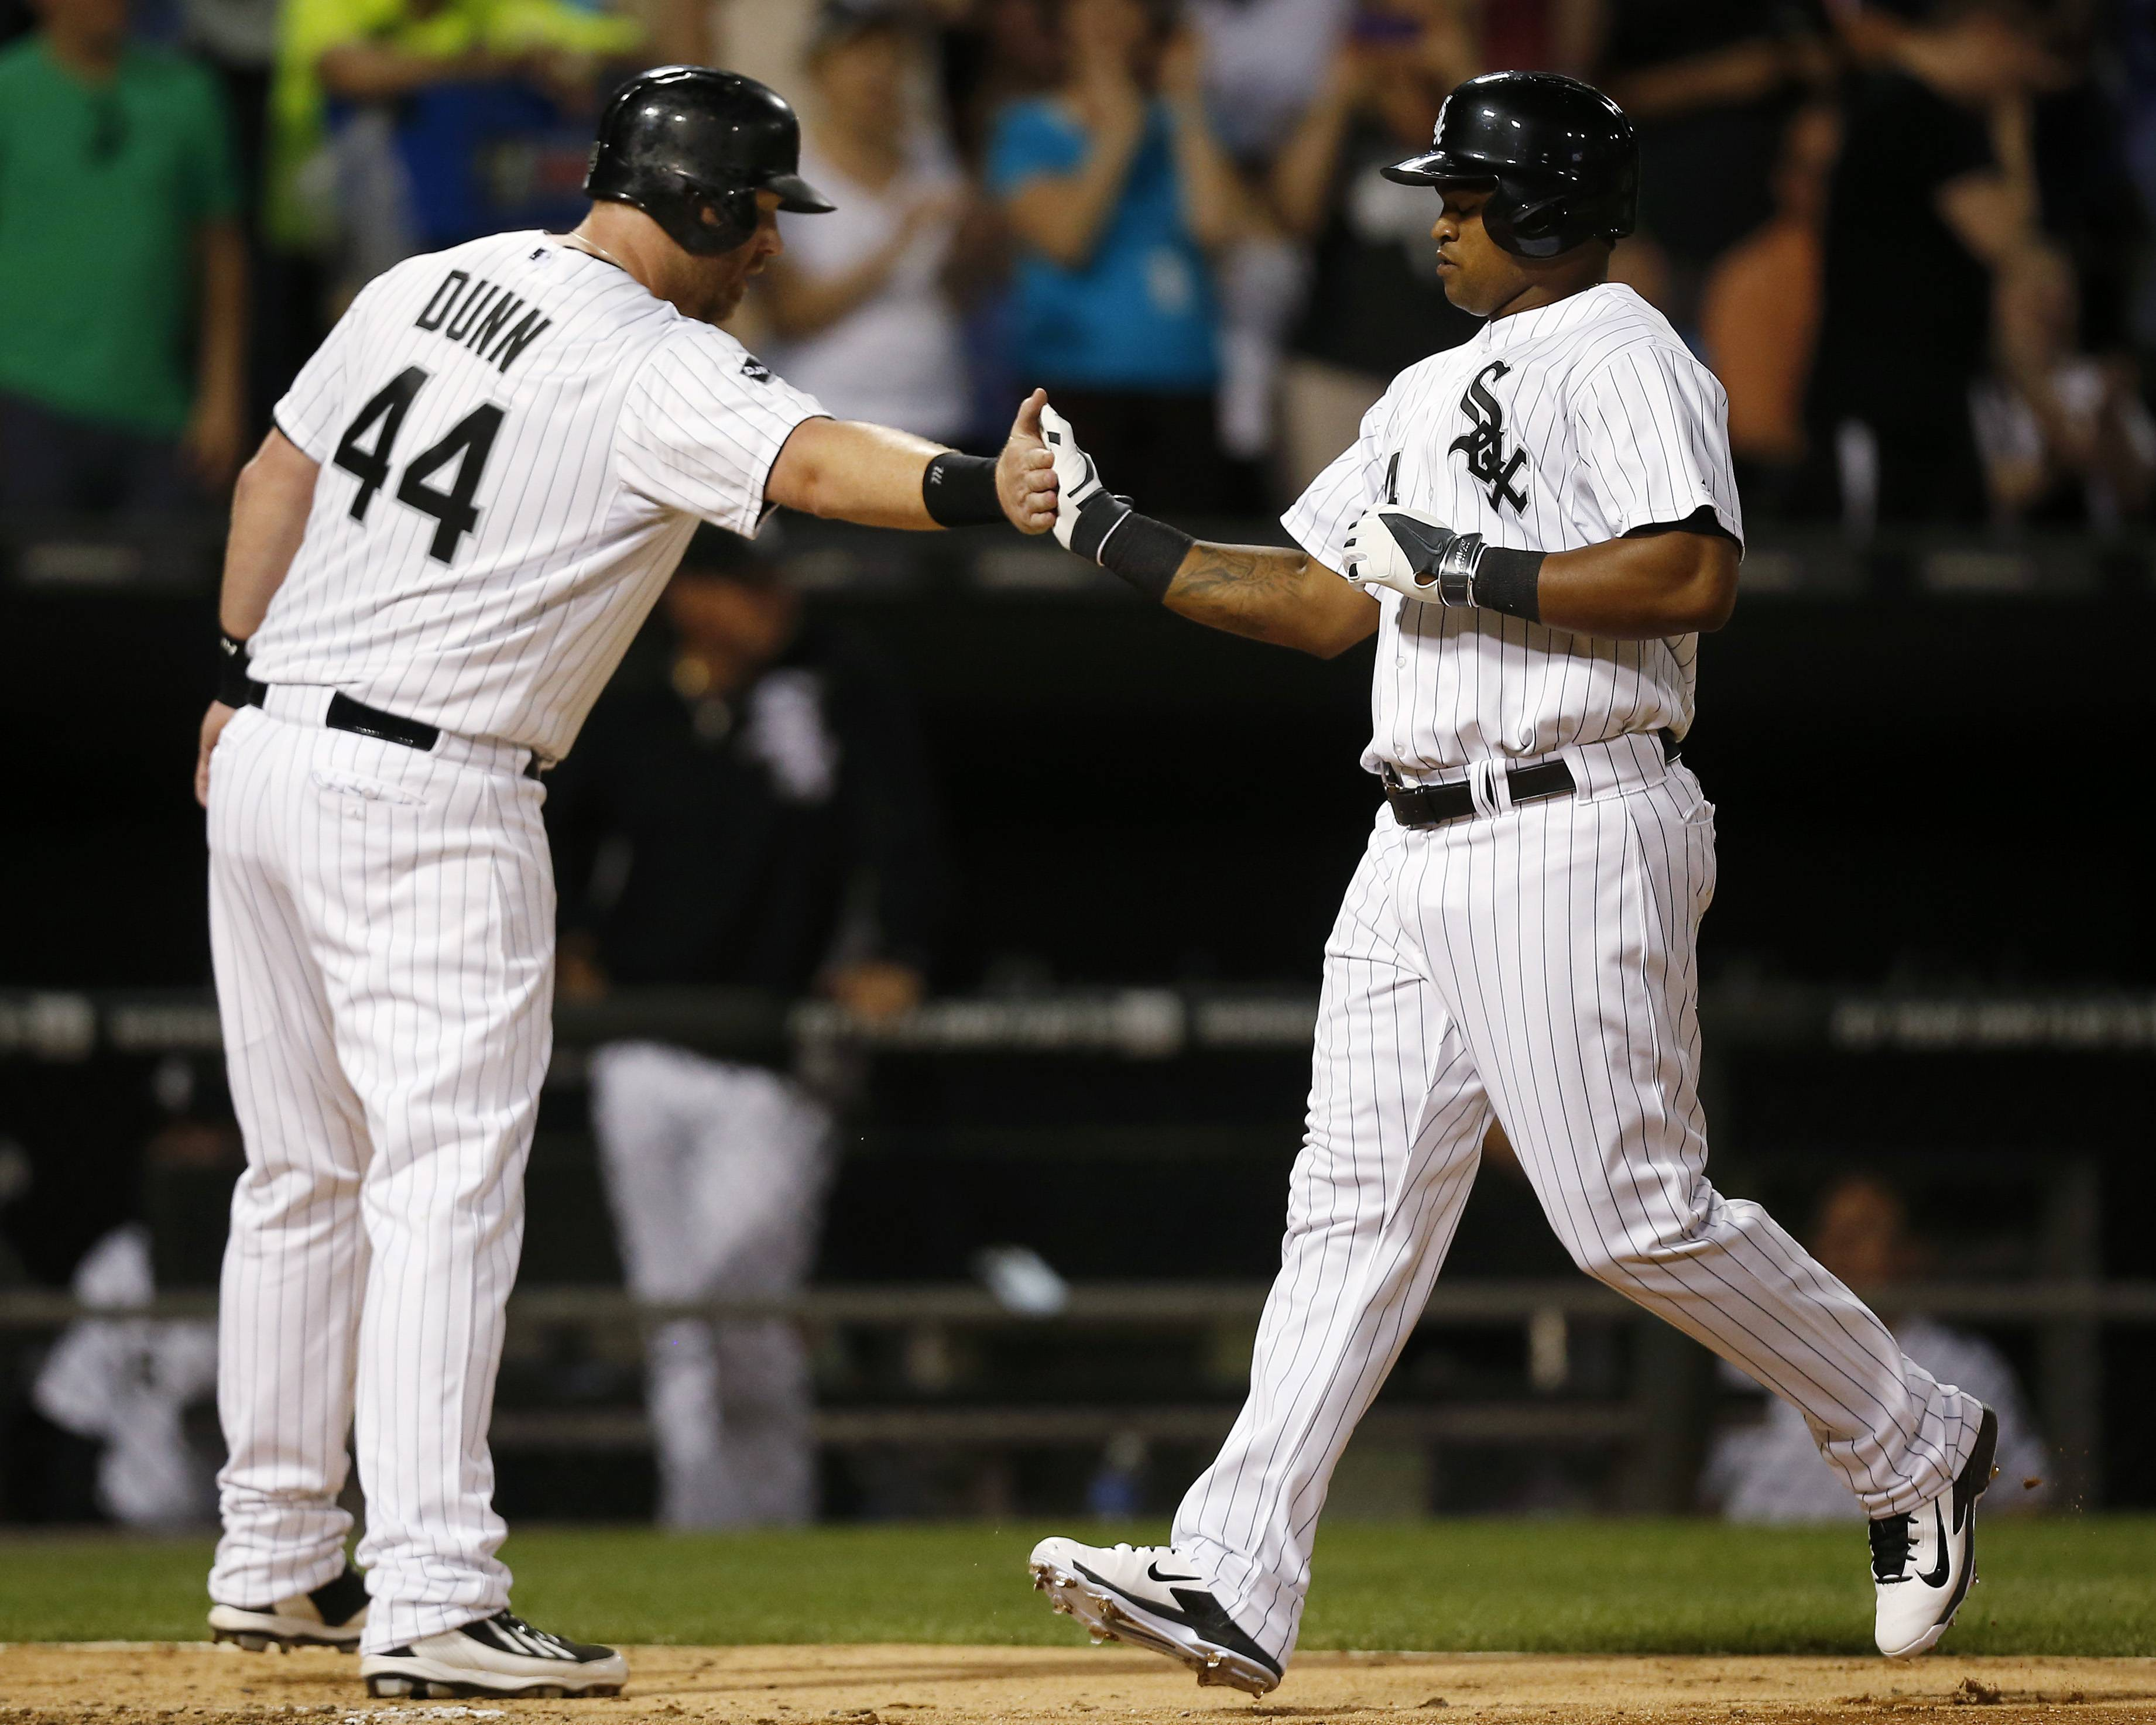 Dayan Viciedo, right, celebrates his two-run home run against the San Francisco Giants with Adam Dunn, who scored, during the fifth inning of a baseball game on Tuesday. Gordon Beckham and Viciedo hit two-run home runs, John Danks pitched effectively into the seventh inning and the White Sox snapped a four-game losing streak with an 8-2 victory over the San Francisco Giants on Tuesday night.